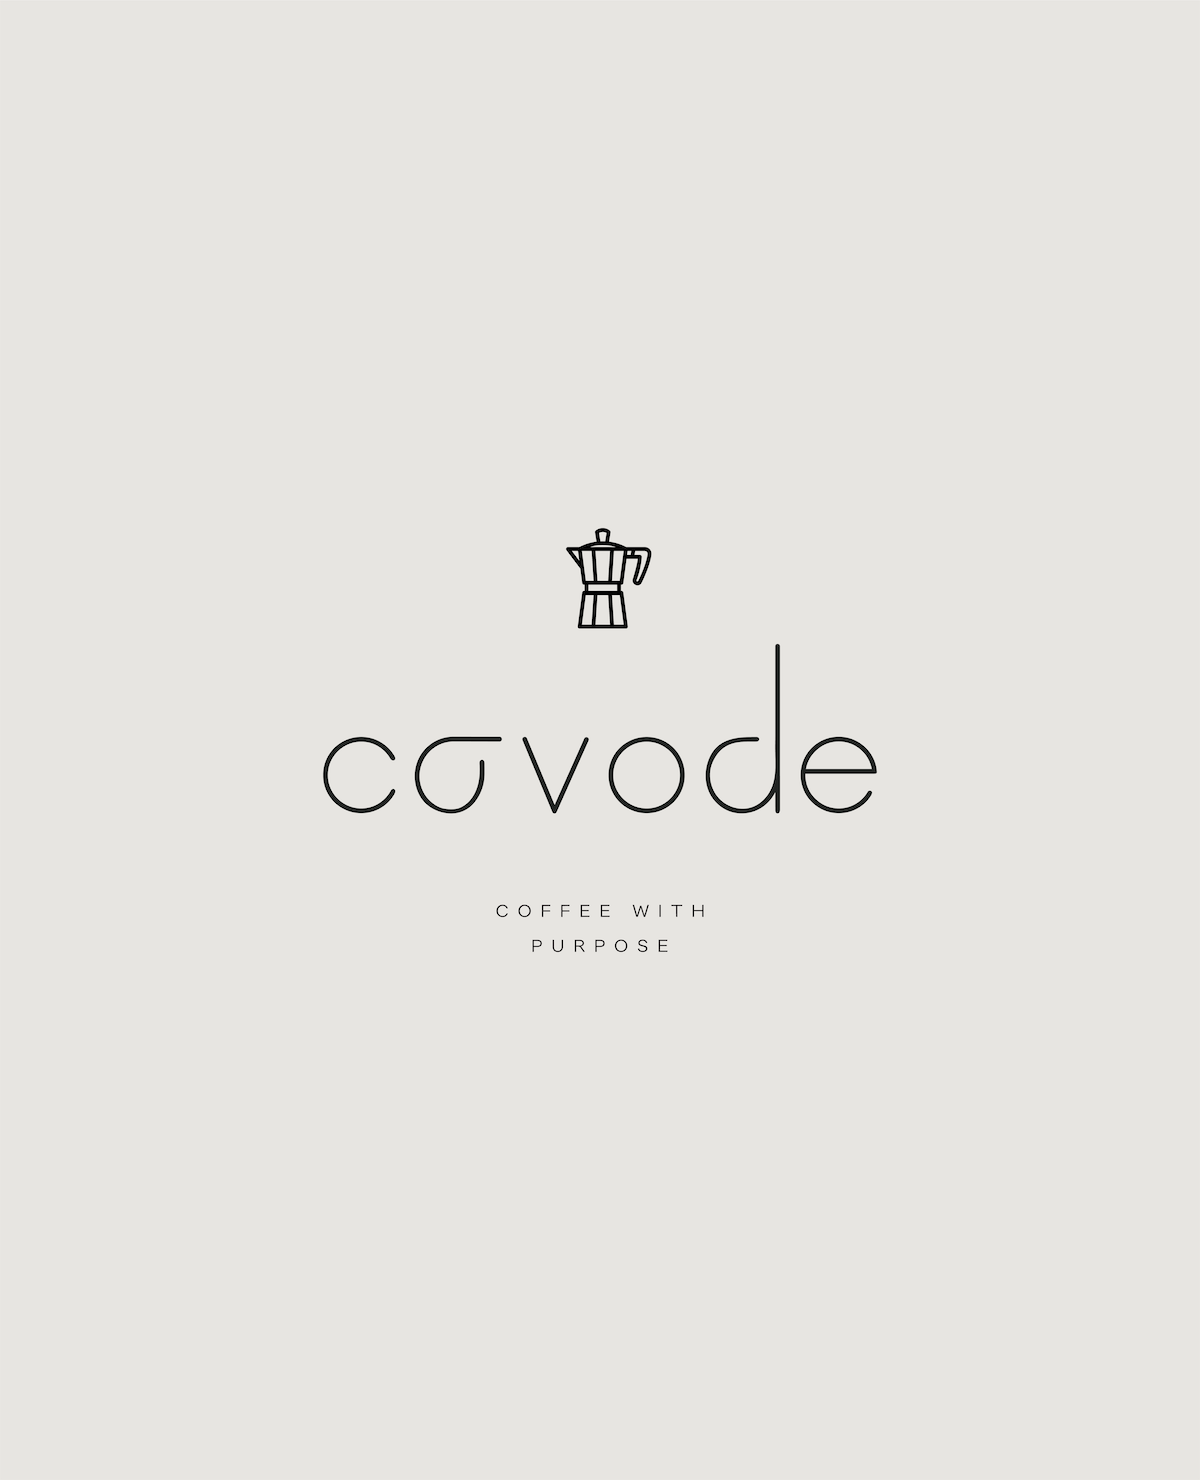 Cavode Brand Design.png